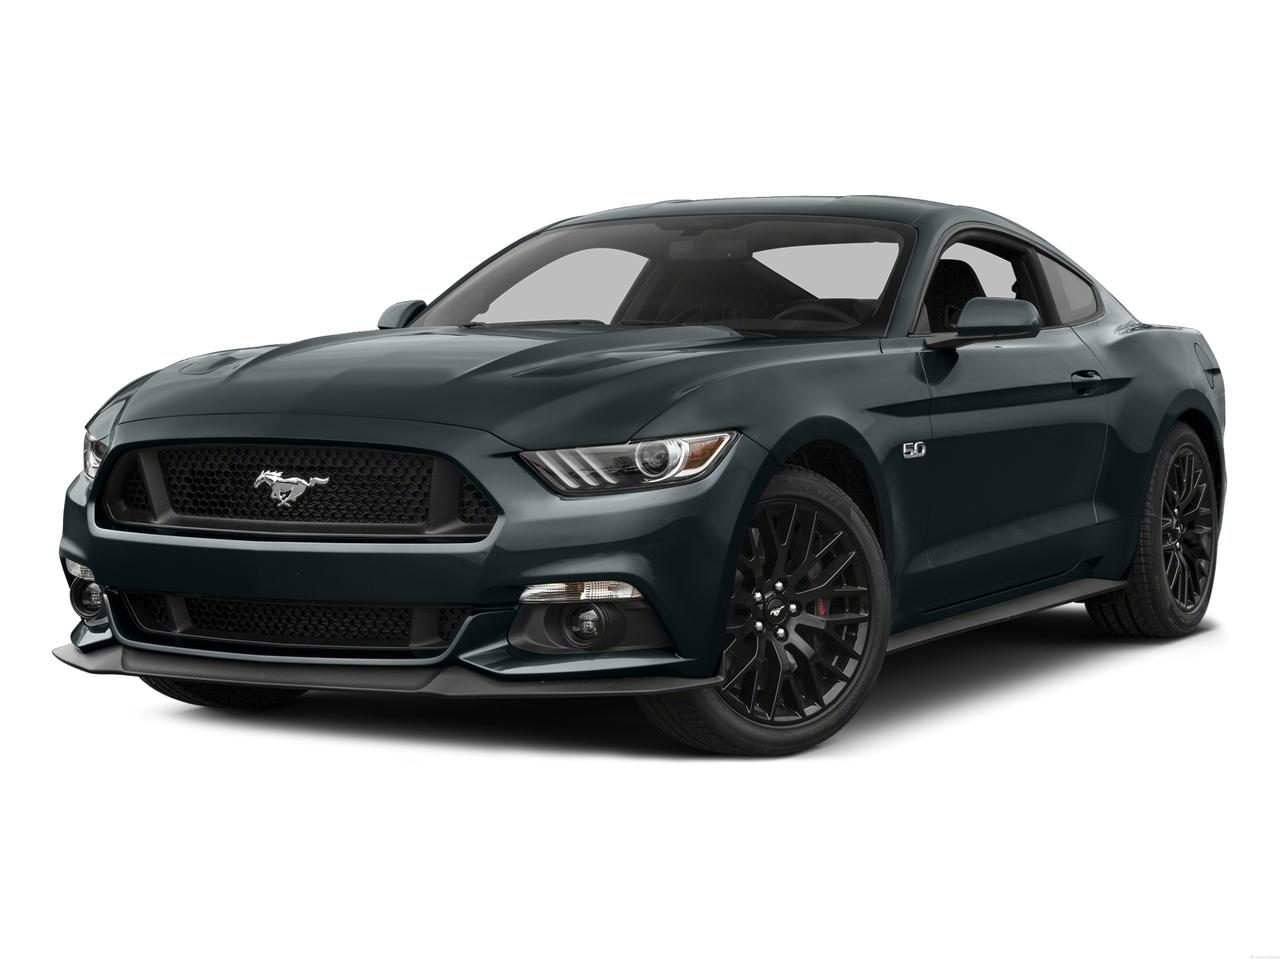 2015 Ford Mustang Vehicle Photo in Ocala, FL 34474